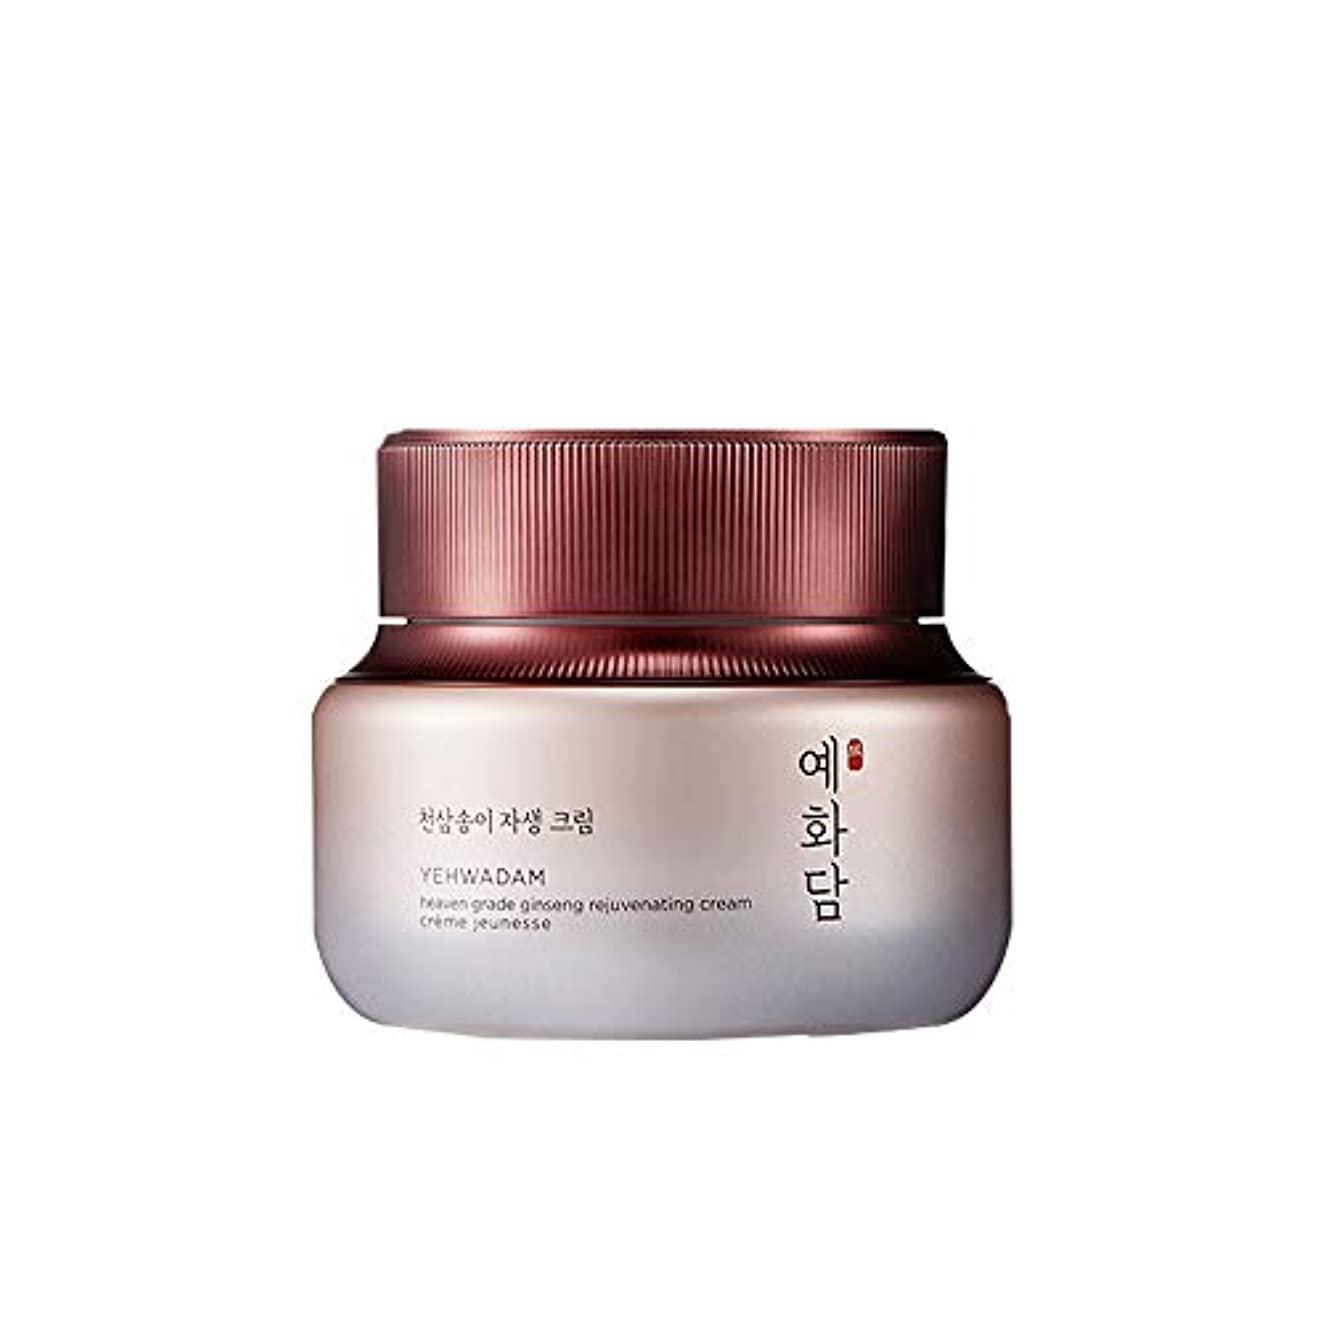 高い語強化[ザフェイスショップ]The Faceshop YEHWADAM天参松栮自生クリーム 50ml The Faceshop YEHWADAM Heaven Grade Ginseng Regenerating Cream...